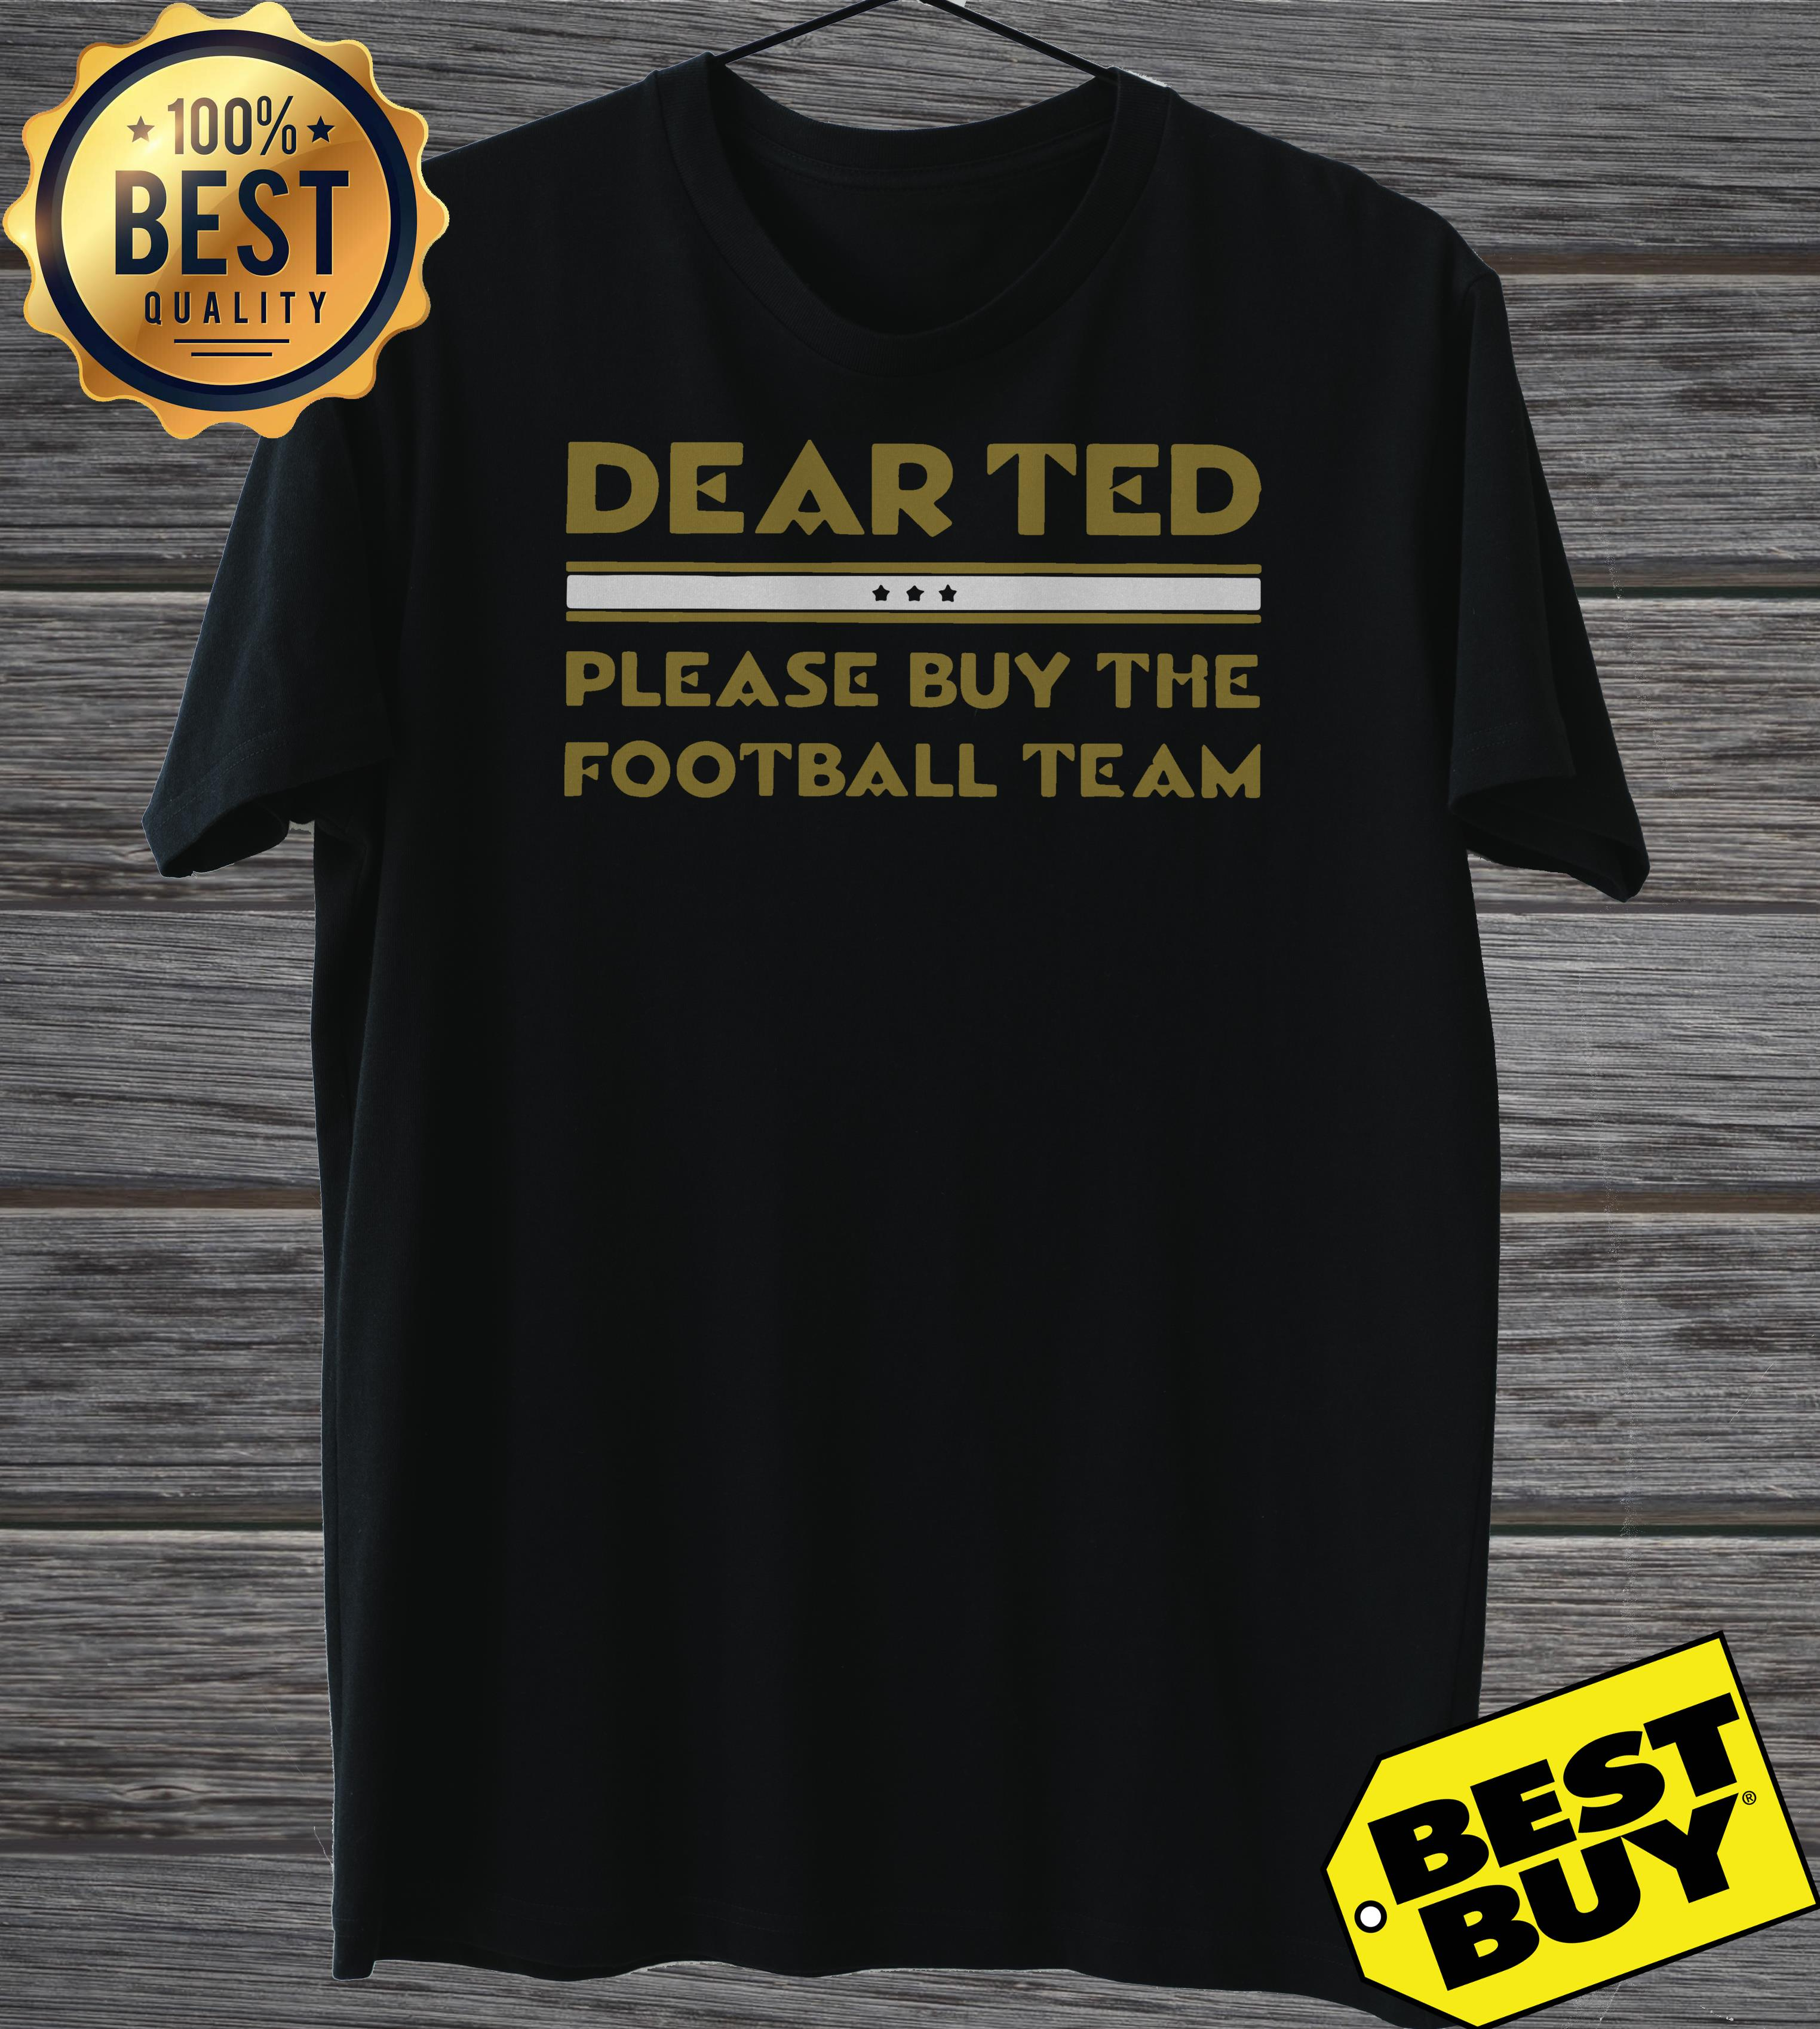 Dear Ted please Buy the Football team ladies tee